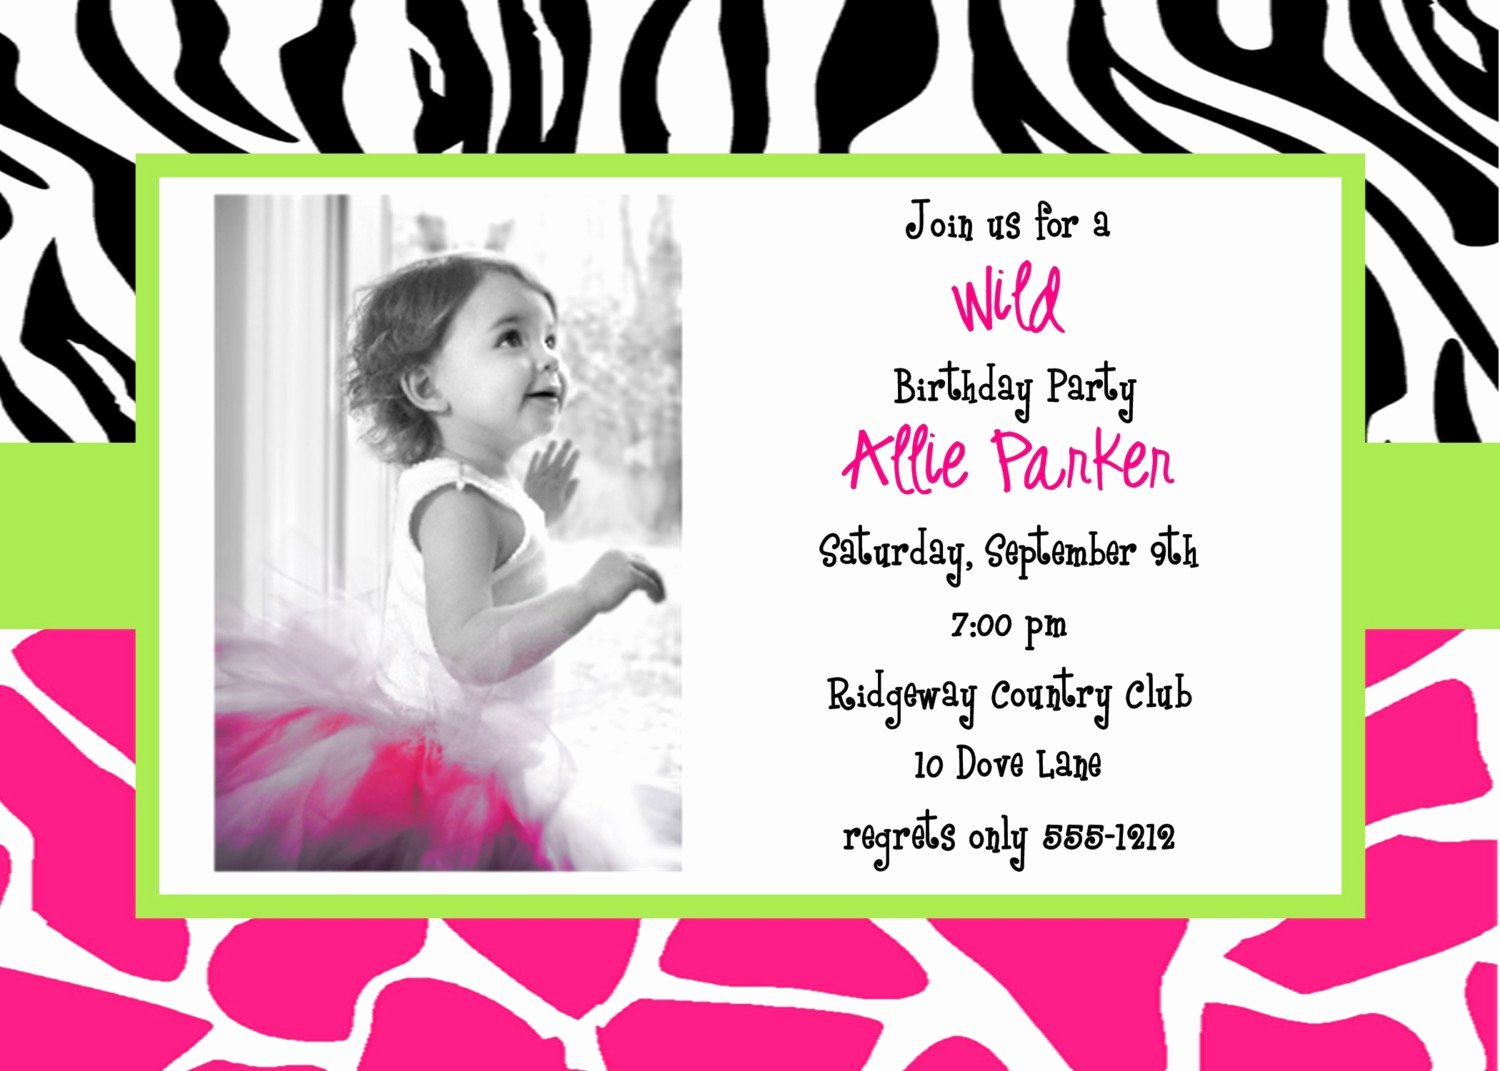 Free Printable Birthday Invitation Templates Luxury How to Choose the Best E Free Printable Birthday